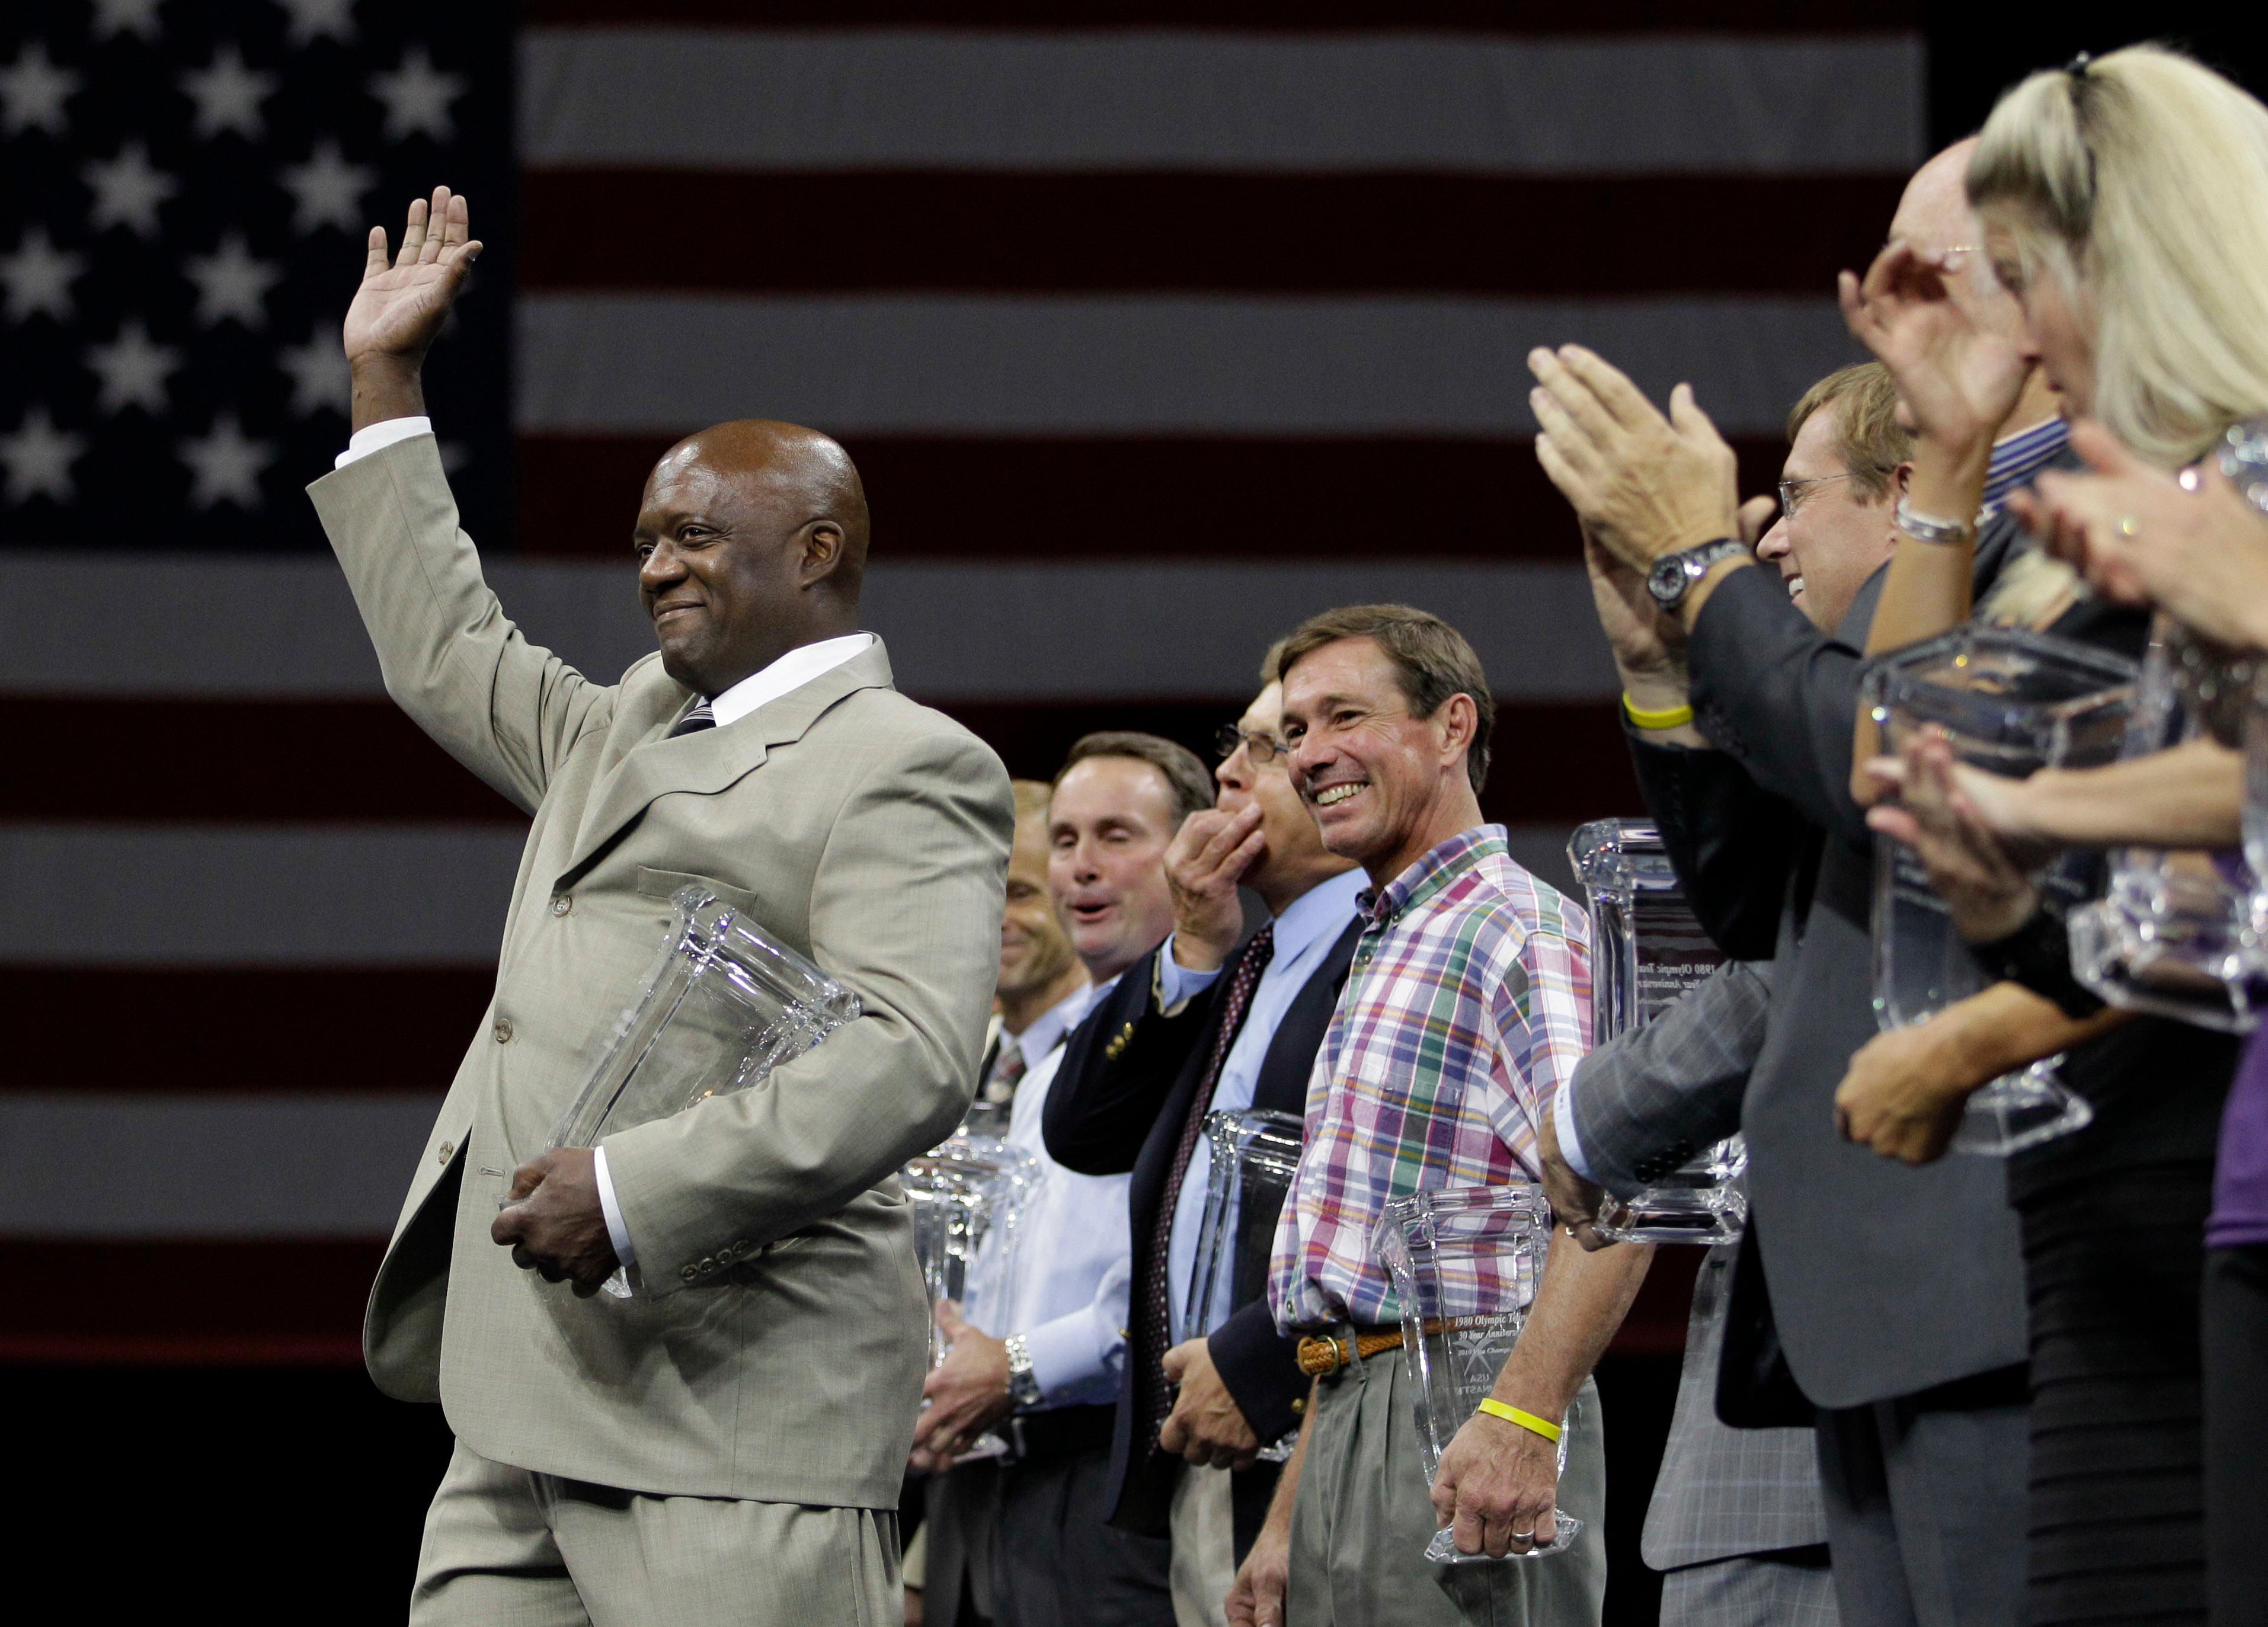 Ron Galimore waves to the crowd as he and others from the 1980 Olympic gymnastics team who did not compete due to the U.S. boycott of the Olympic Games, are honored at the U.S. Gymnastics Championships in Hartford, Conn. on August 14, 2010. On Nov. 16, 2018 it was announced that Galimore resigned from being USA Gymnastics' COO.